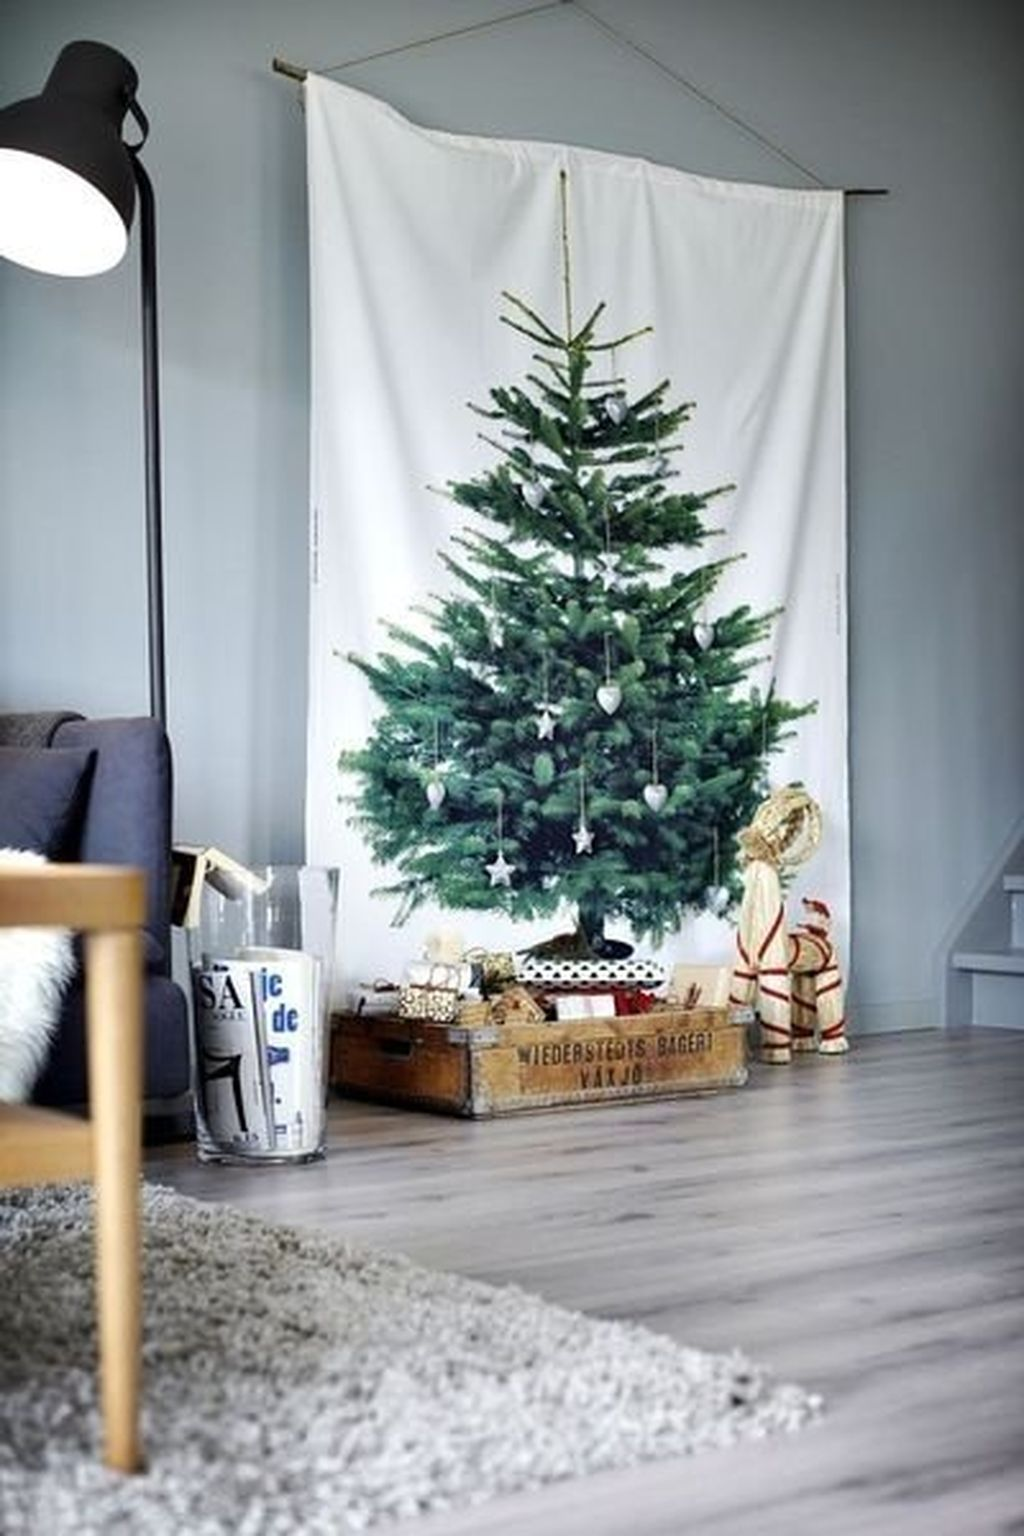 Space Saving Christmas Tree Ideas Suitable For Small Rooms 23